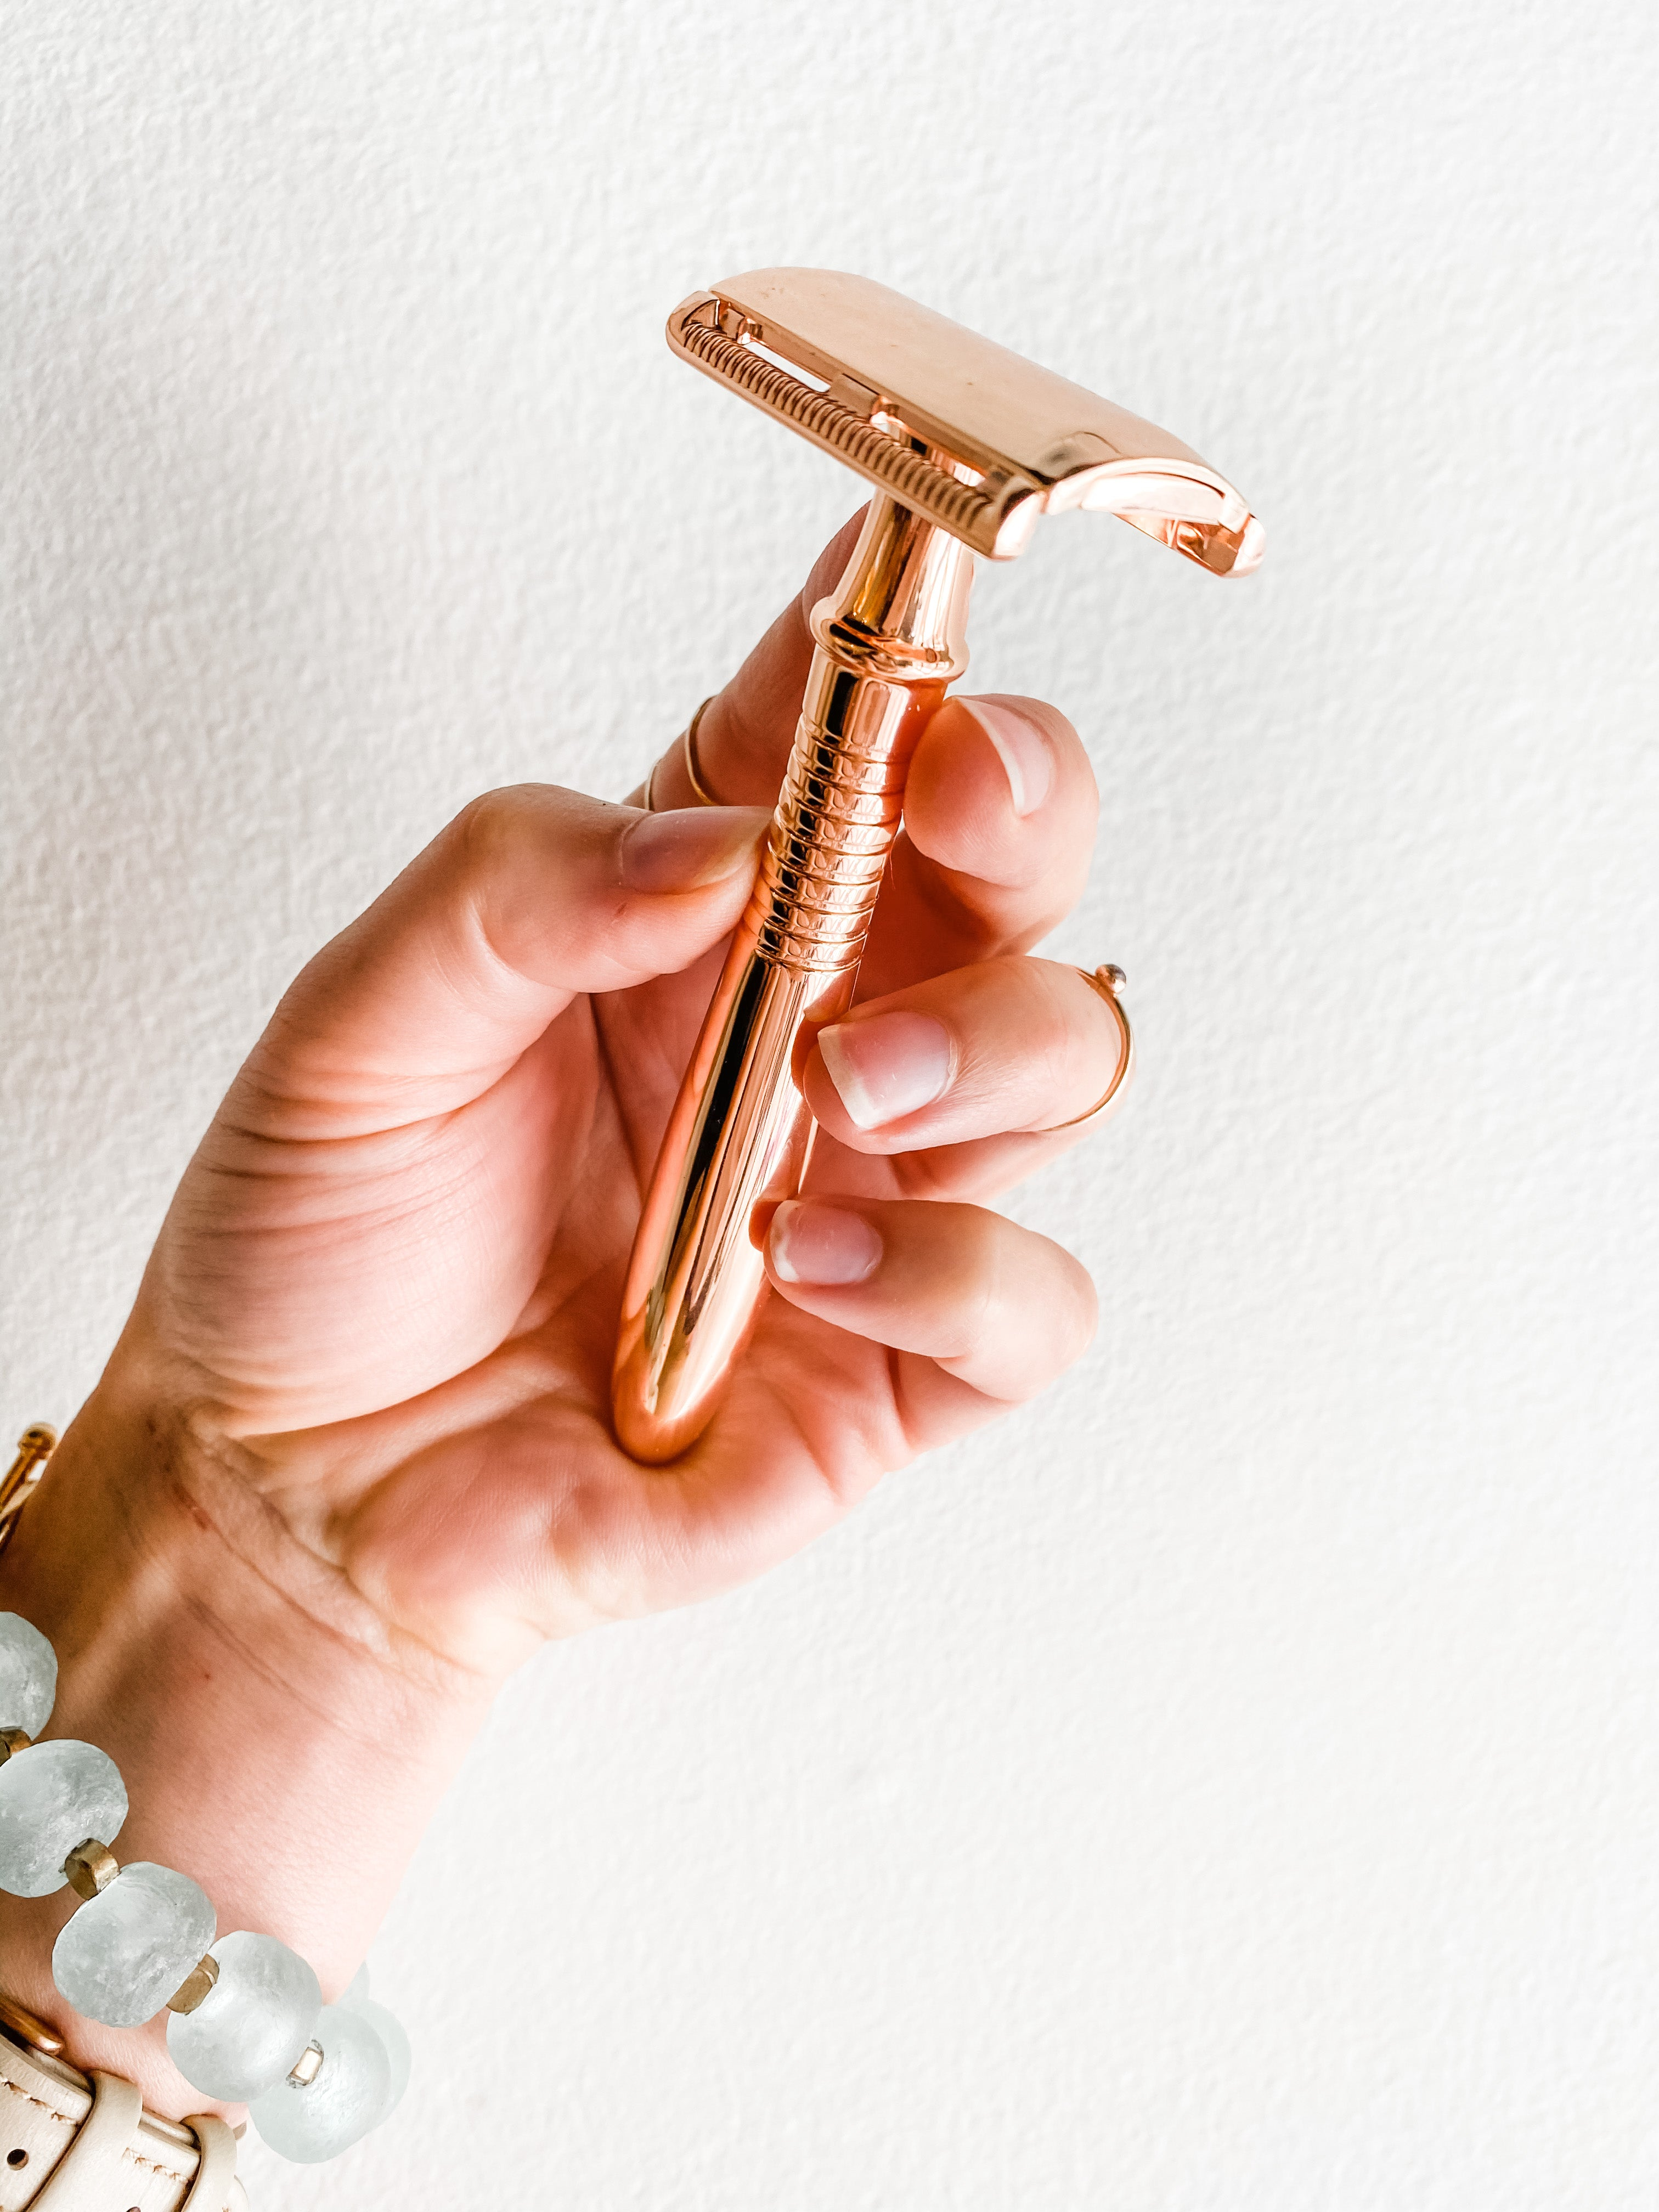 reusable razor, safety razor, zero waste razor, sustainable shaving, for women - Shop Be Pure  Edit alt text